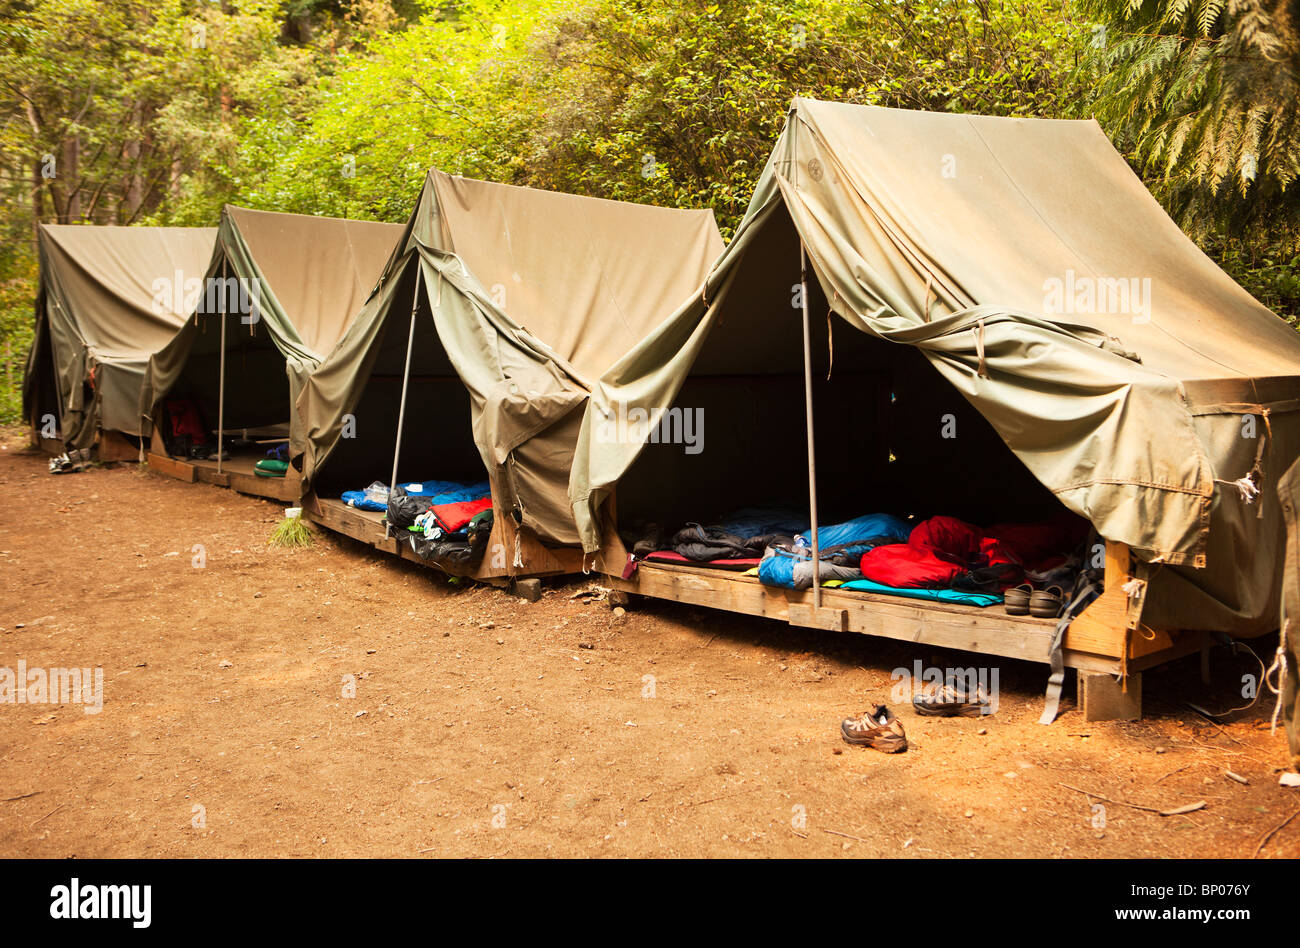 Roughing It At Summer Camp - Stock Image